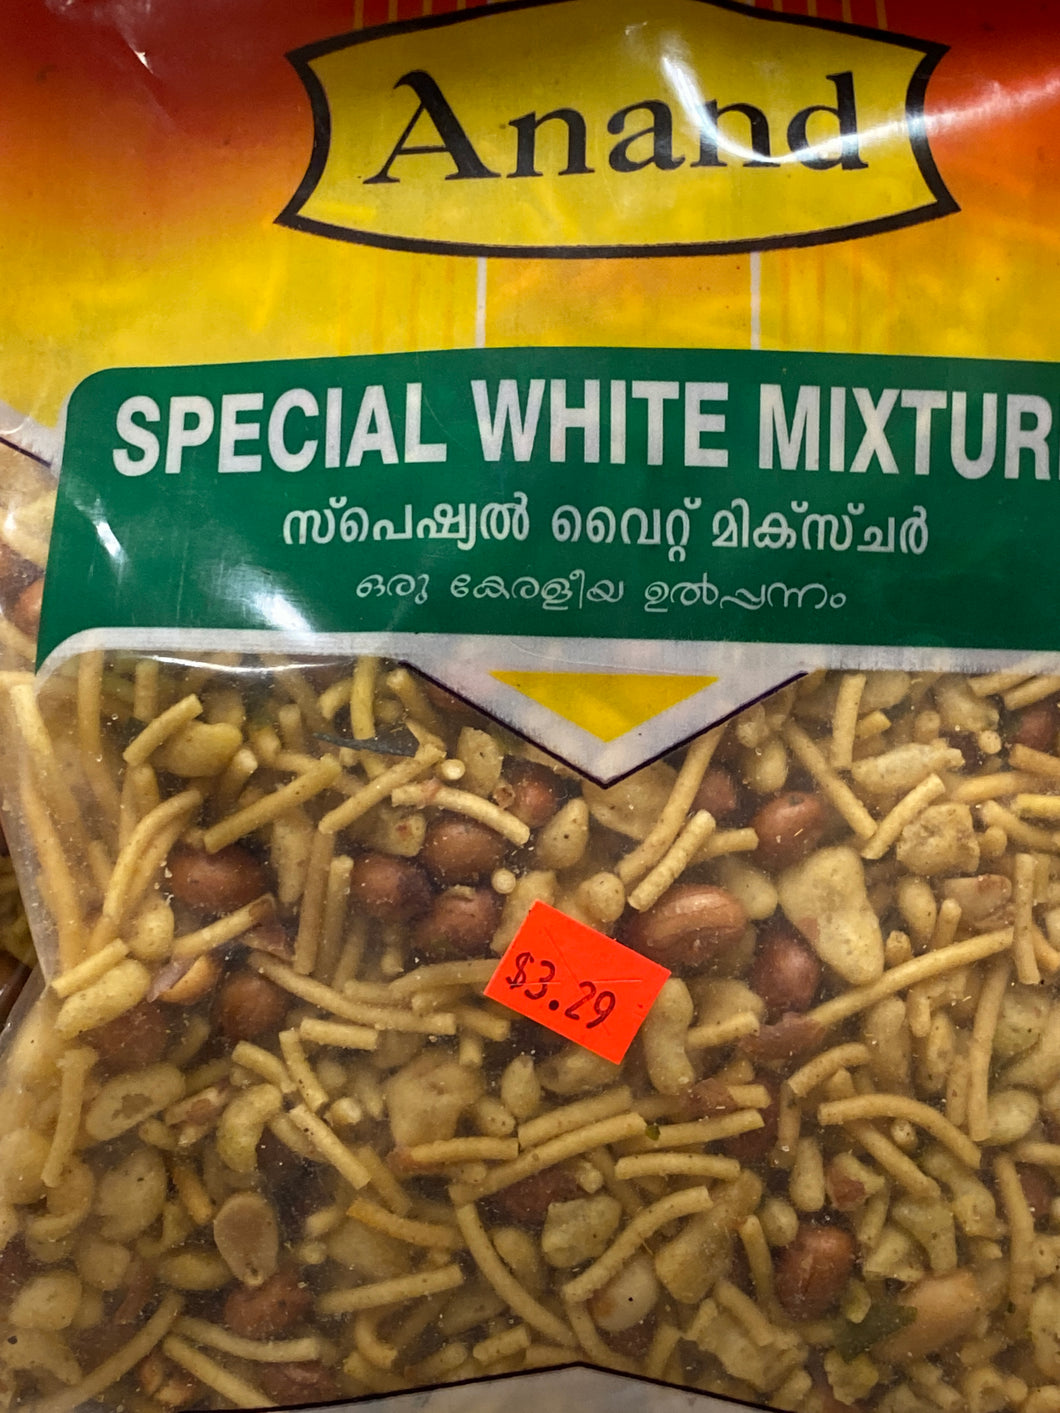 ANAND SPECIAL WHITE MIXTURE